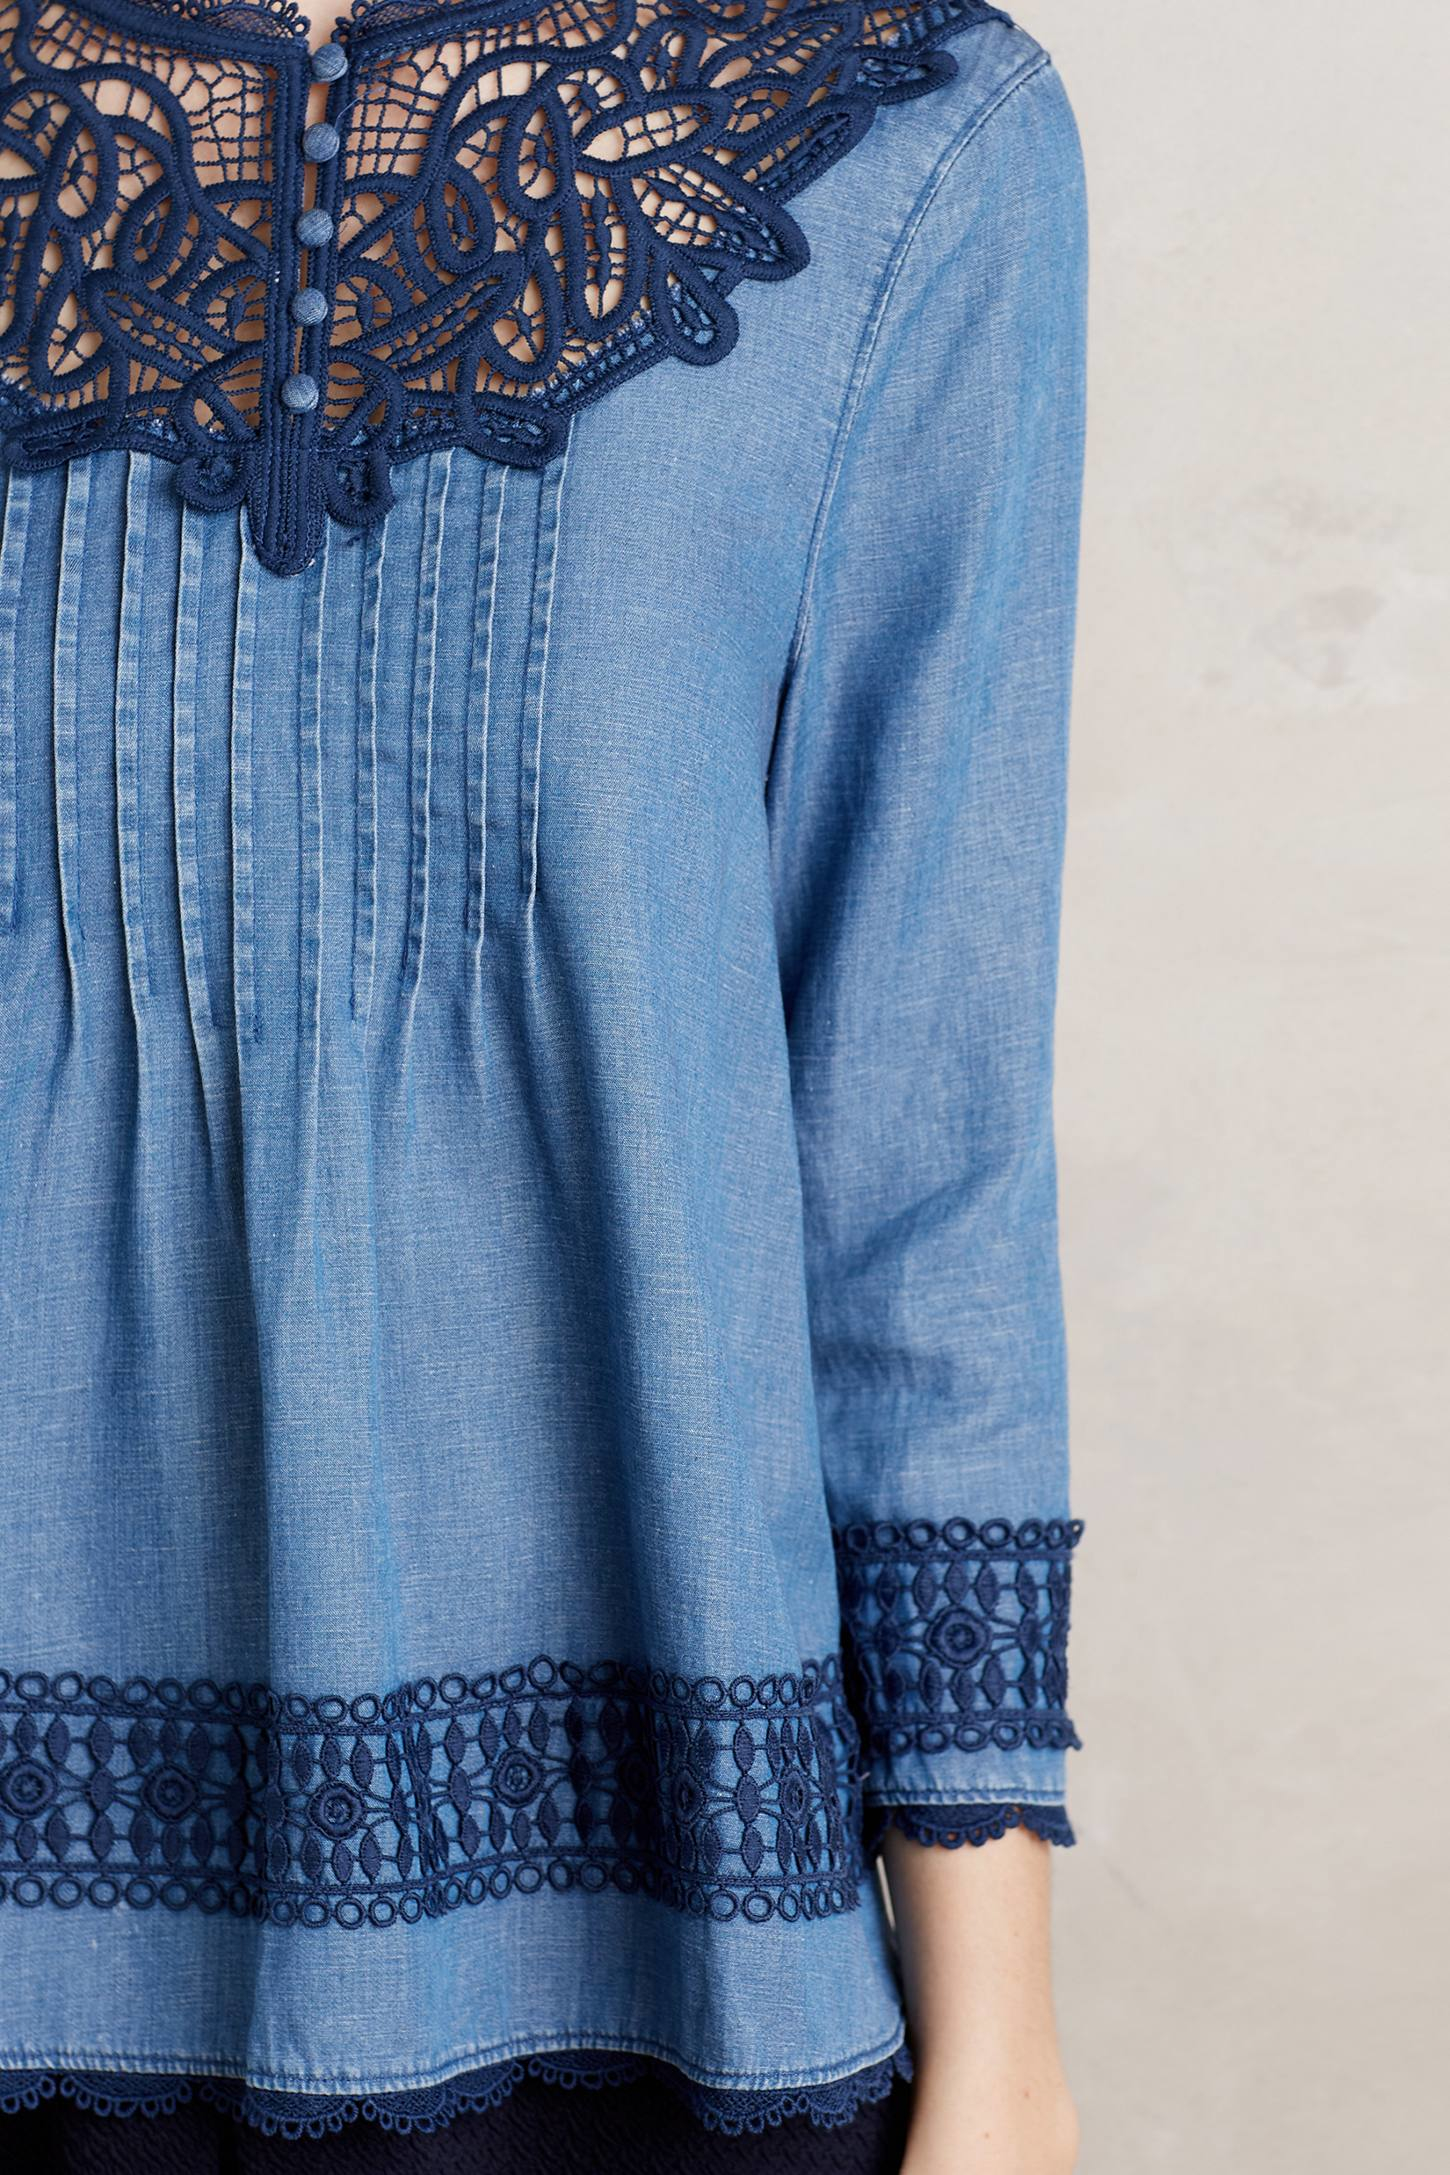 Lyst holding horses laced chambray top in blue for Chambray top